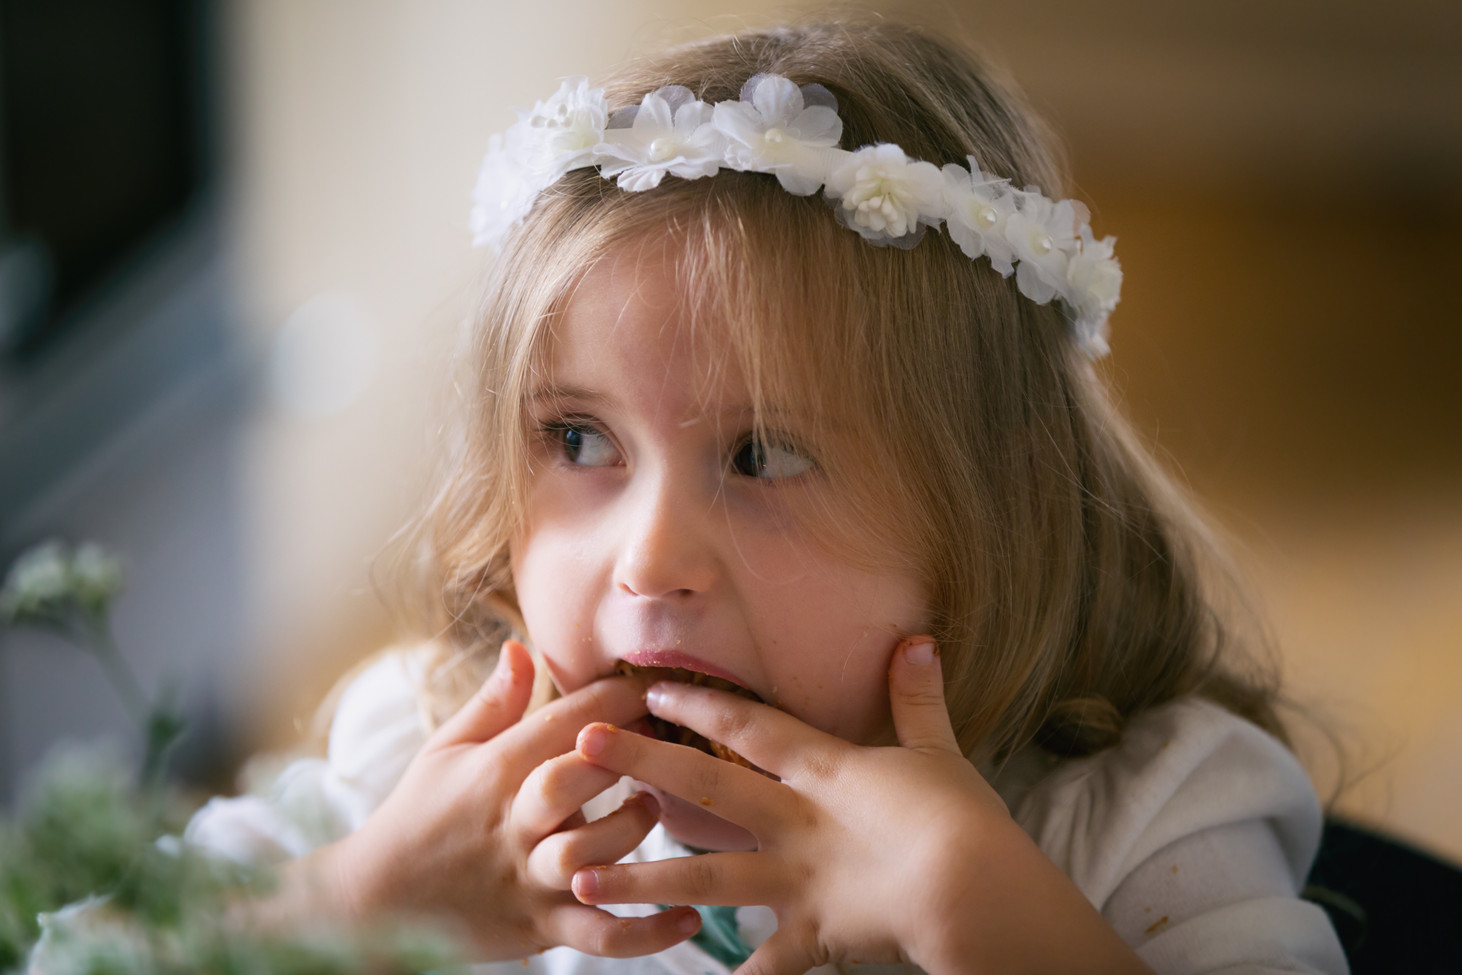 Flower girl shoving food into her mouth.